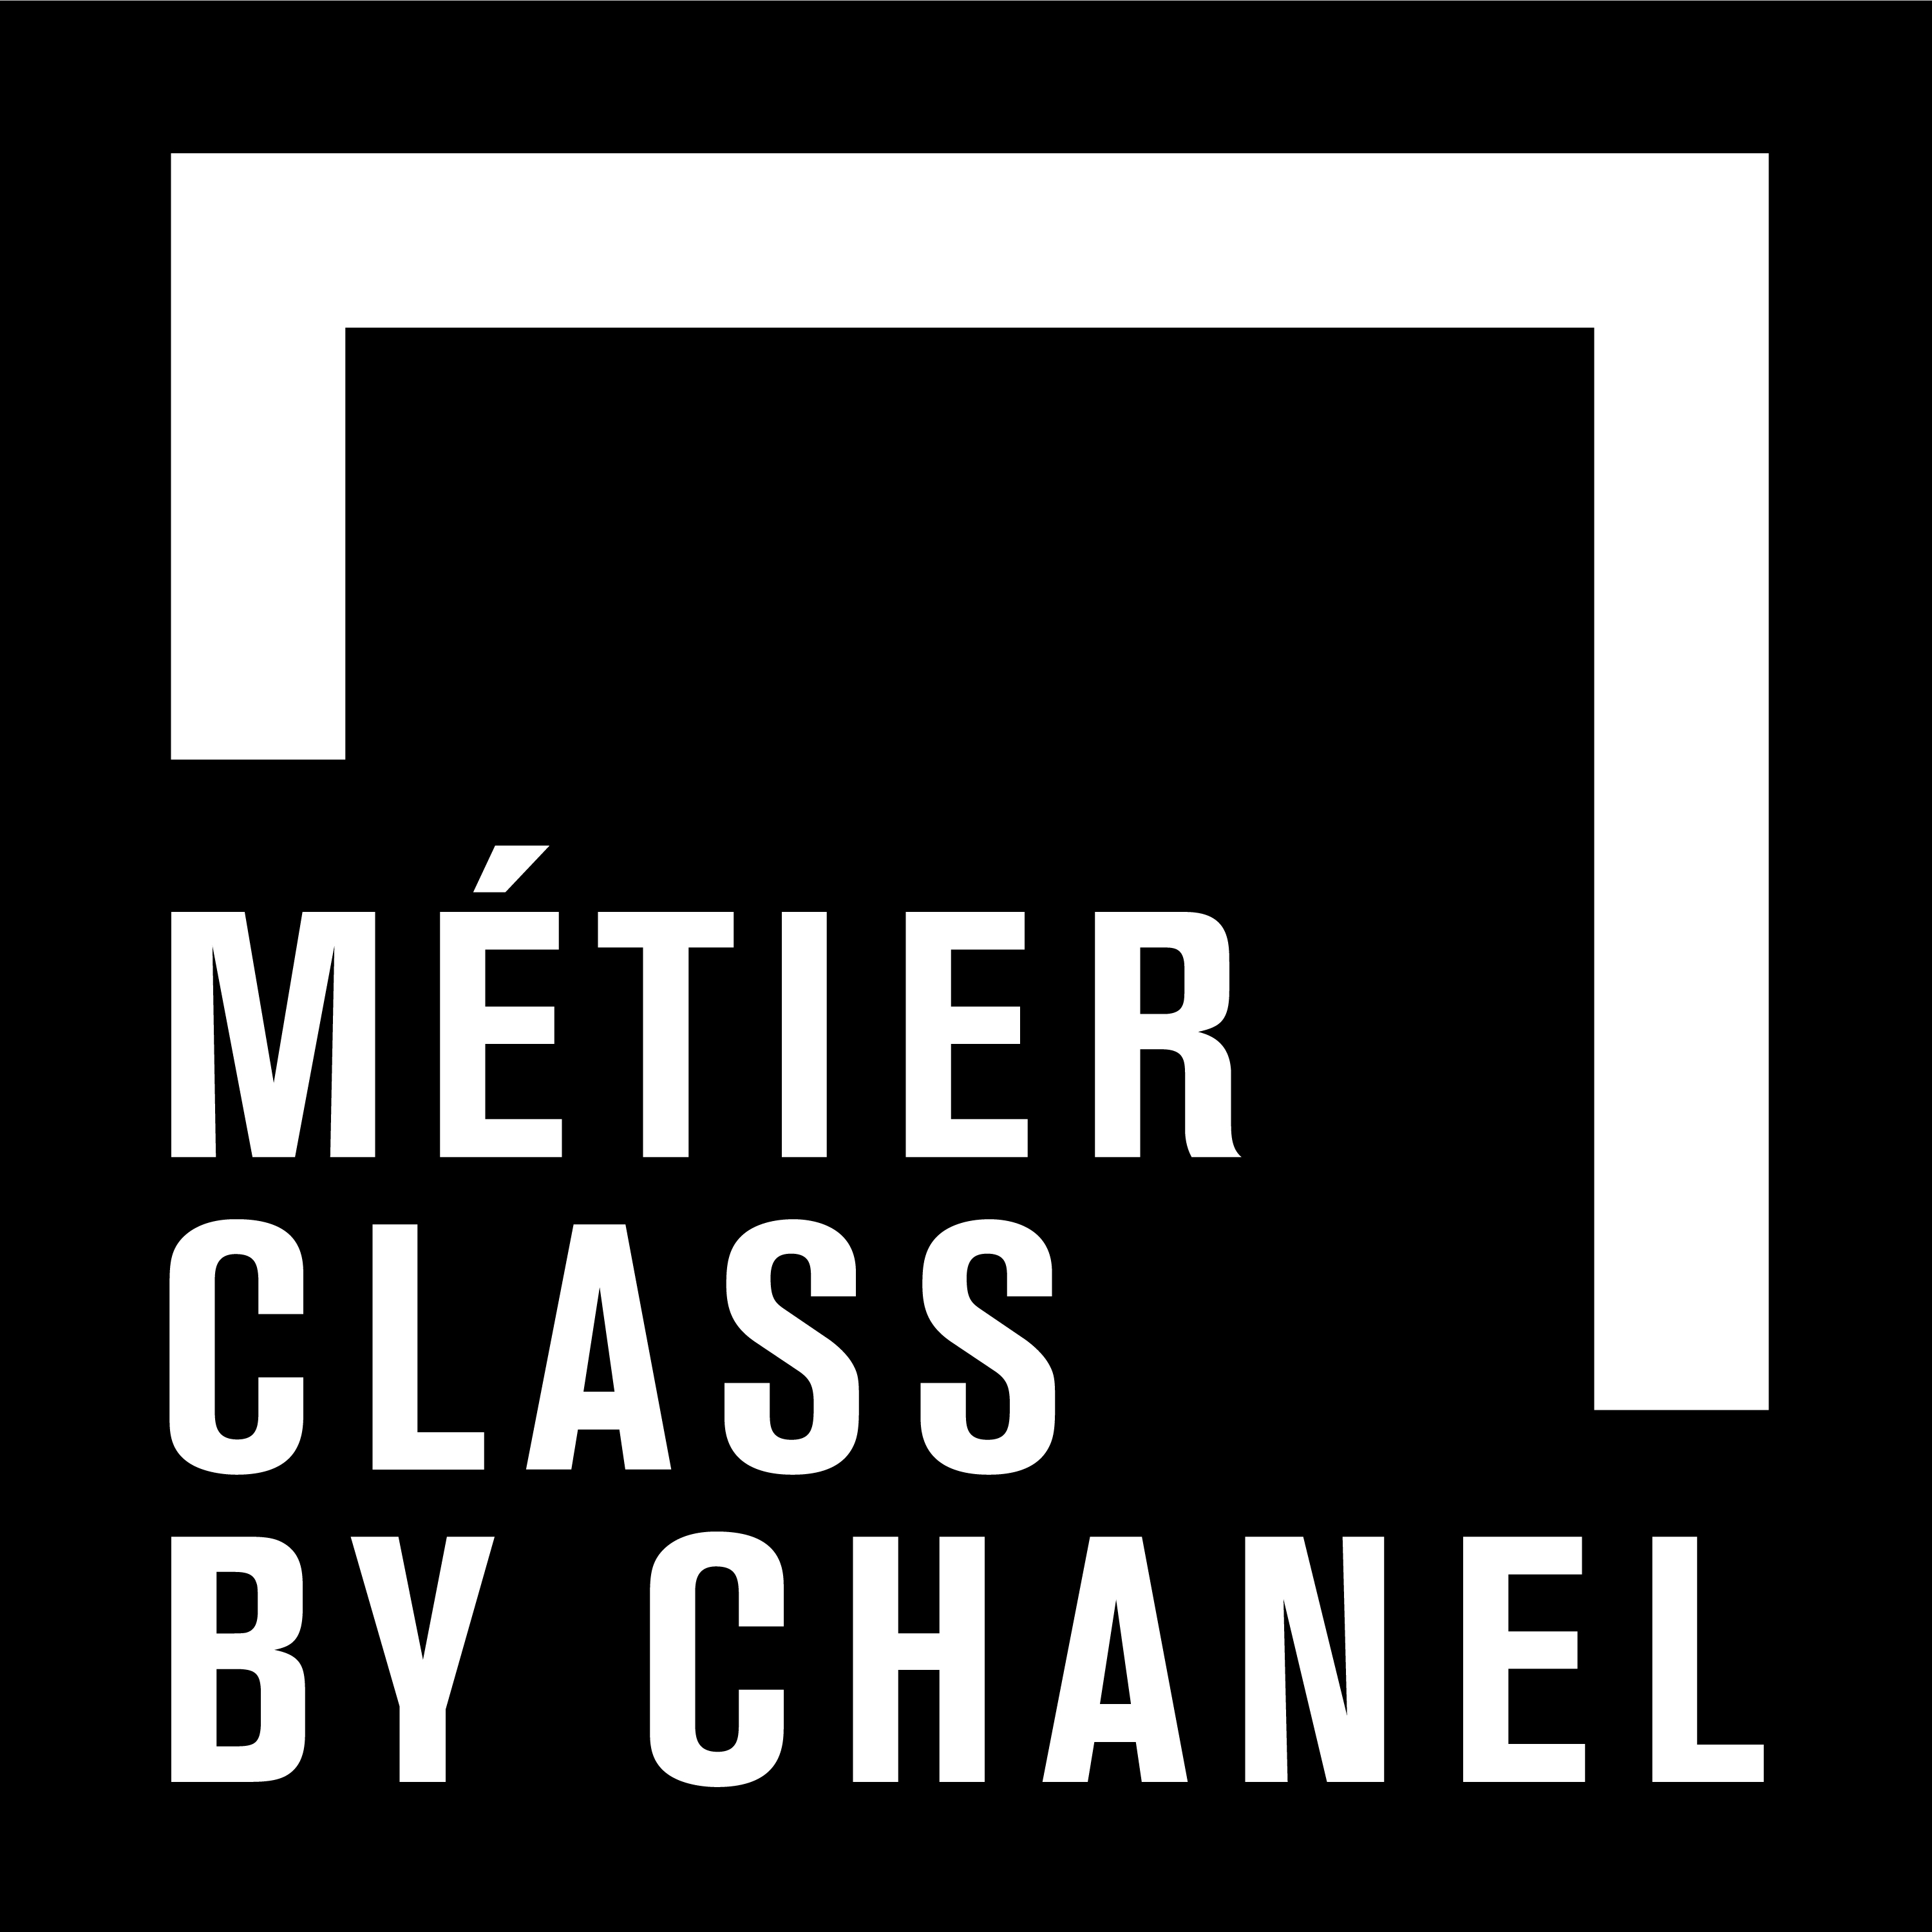 Monocle 24: Métier Class by Chanel